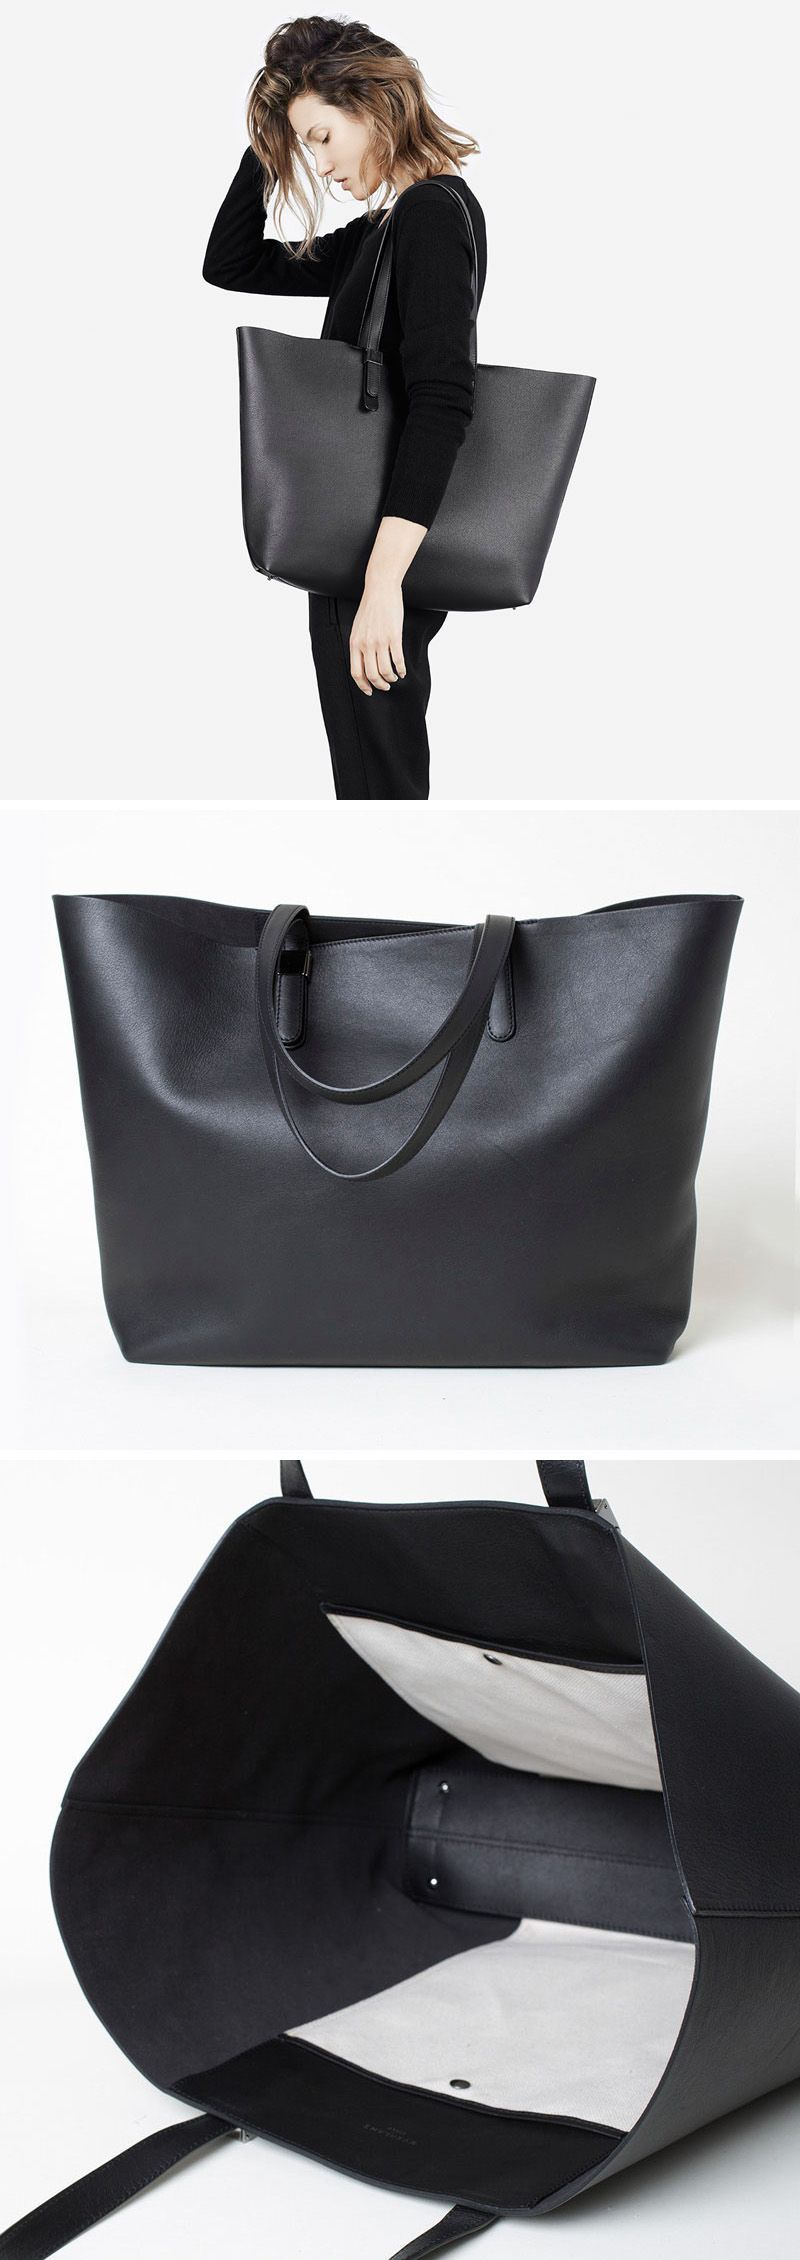 38d1f3cccc55 This large modern black leather tote has small feet on the bottom so you  don t have to worry about setting it down on the floor.  LeatherFlooring